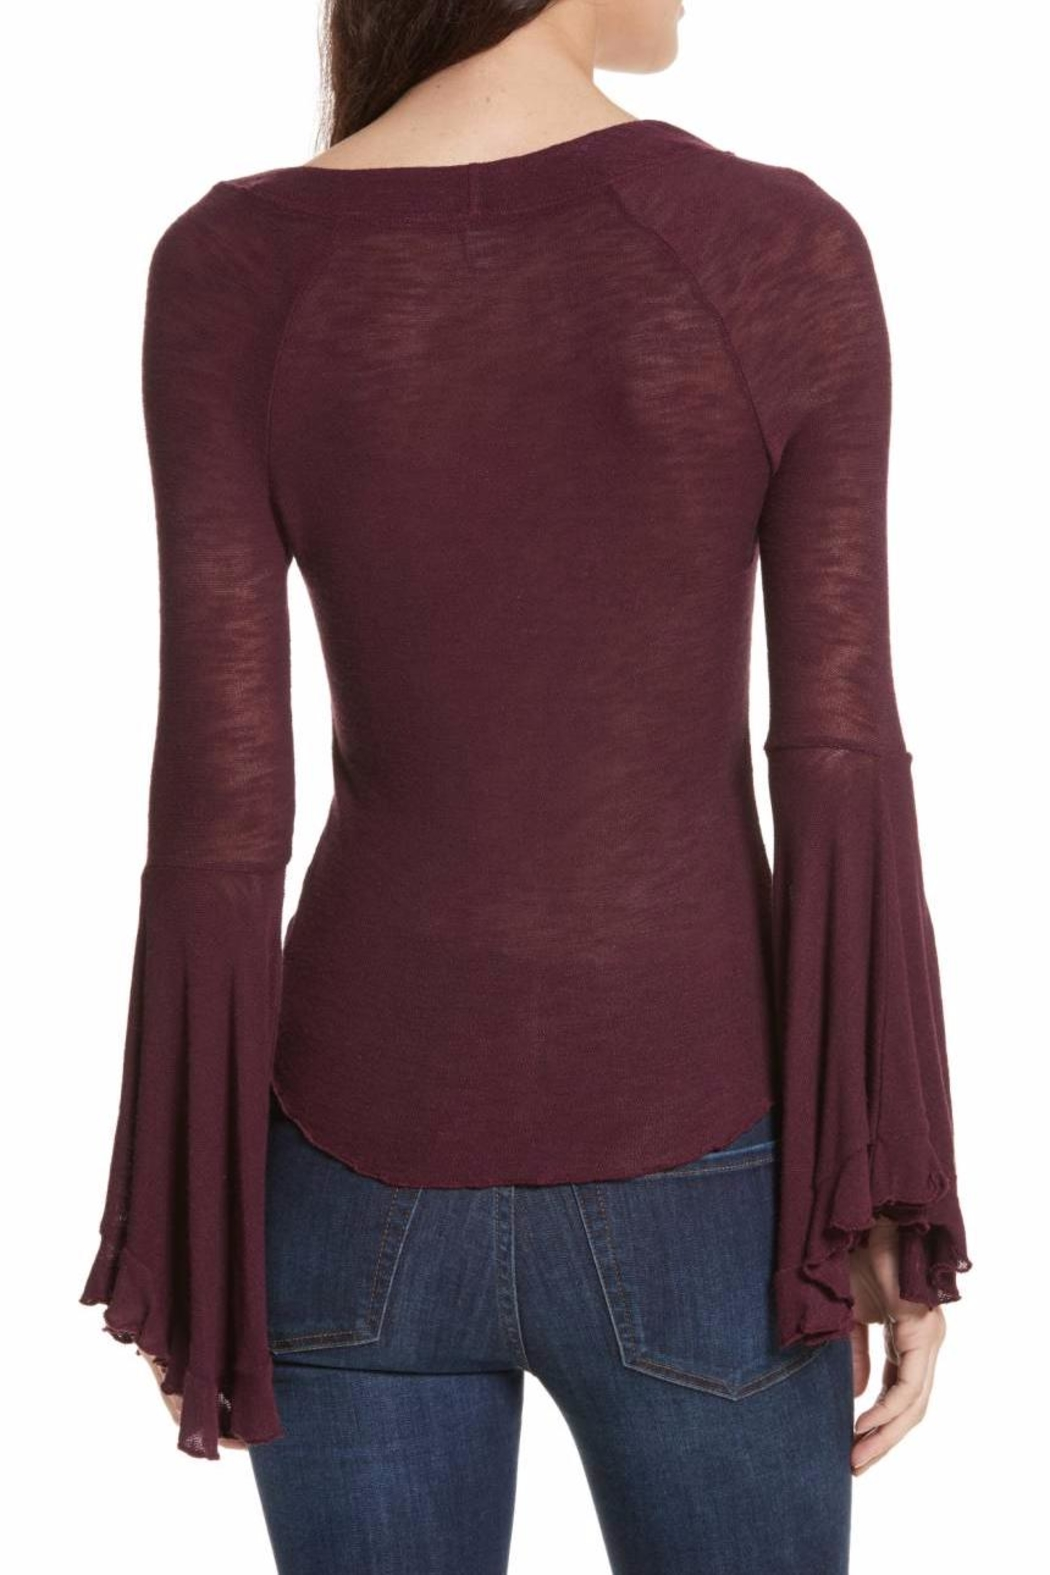 Free People Soo Dramatic Top - Side Cropped Image